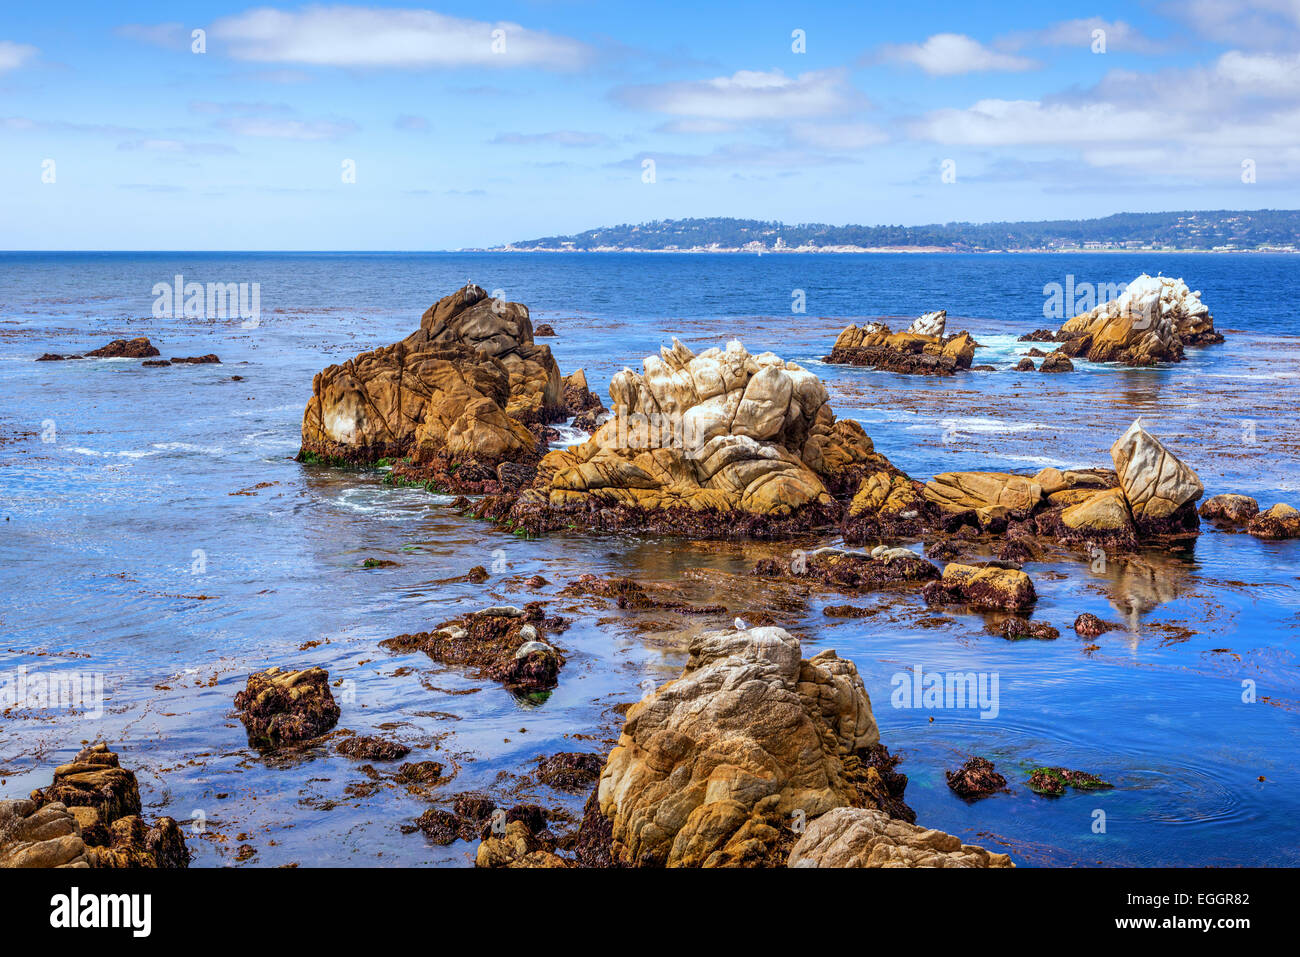 Point Lobos State Reserve. Monterey county, California, United States. Stock Photo